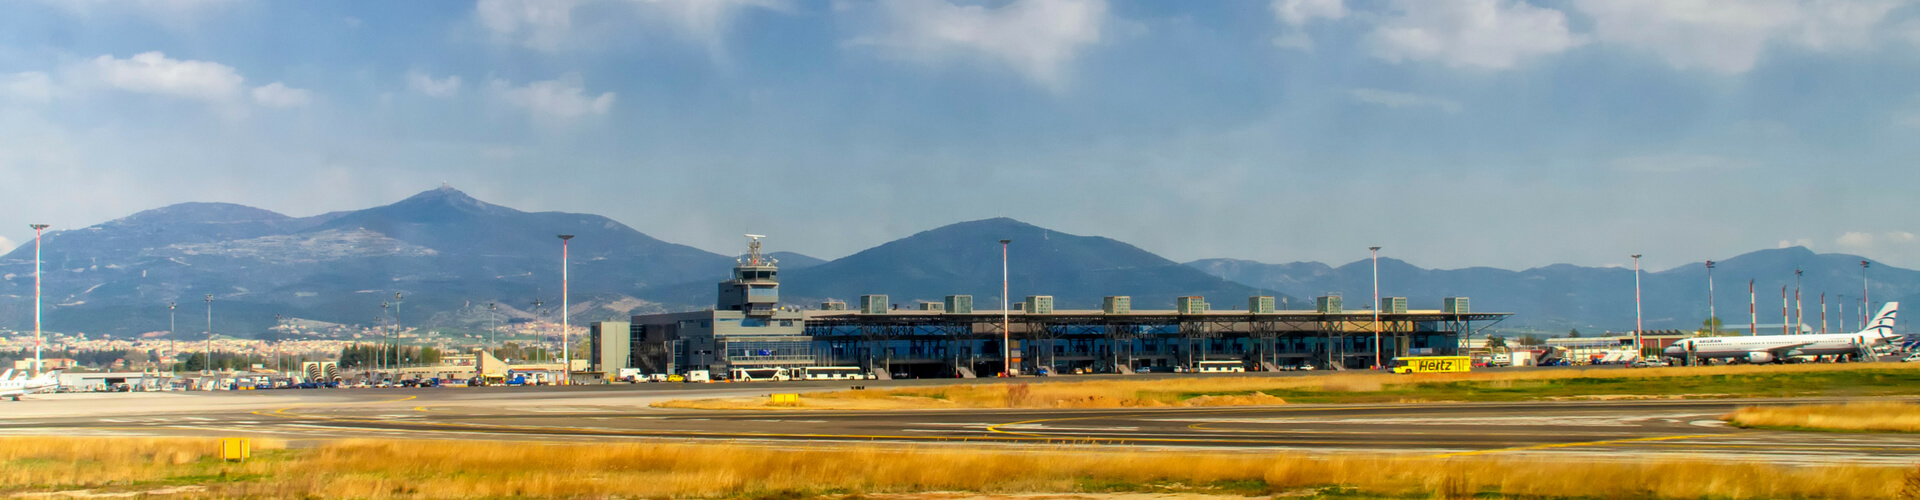 How to avoid having a bad Thessaloniki airport experience - Prime Traveller